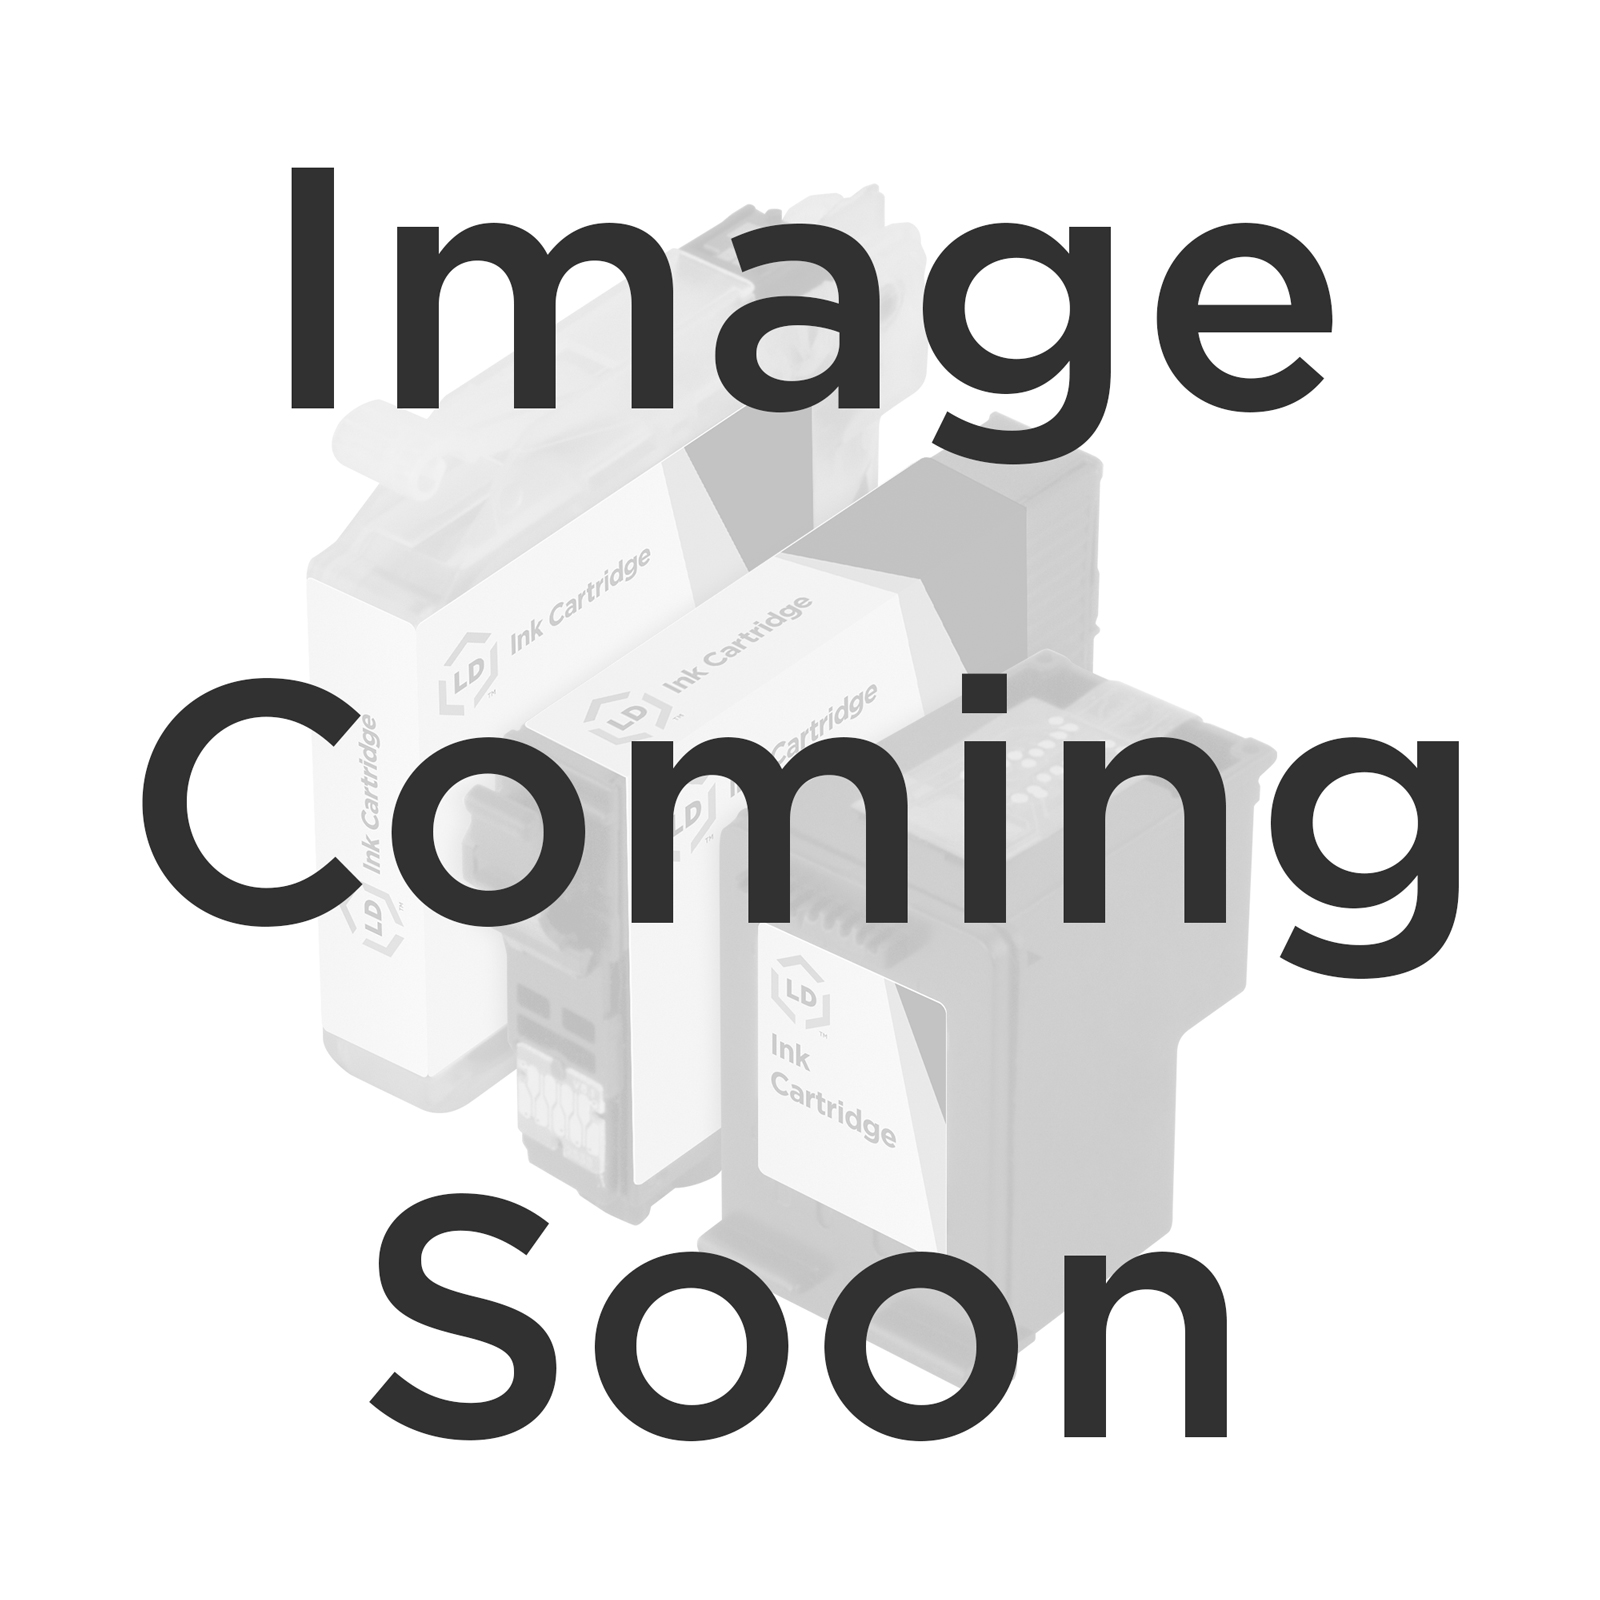 Carson-Dellosa Common Core Language Arts 4 Today Workbook Education Printed Book - English